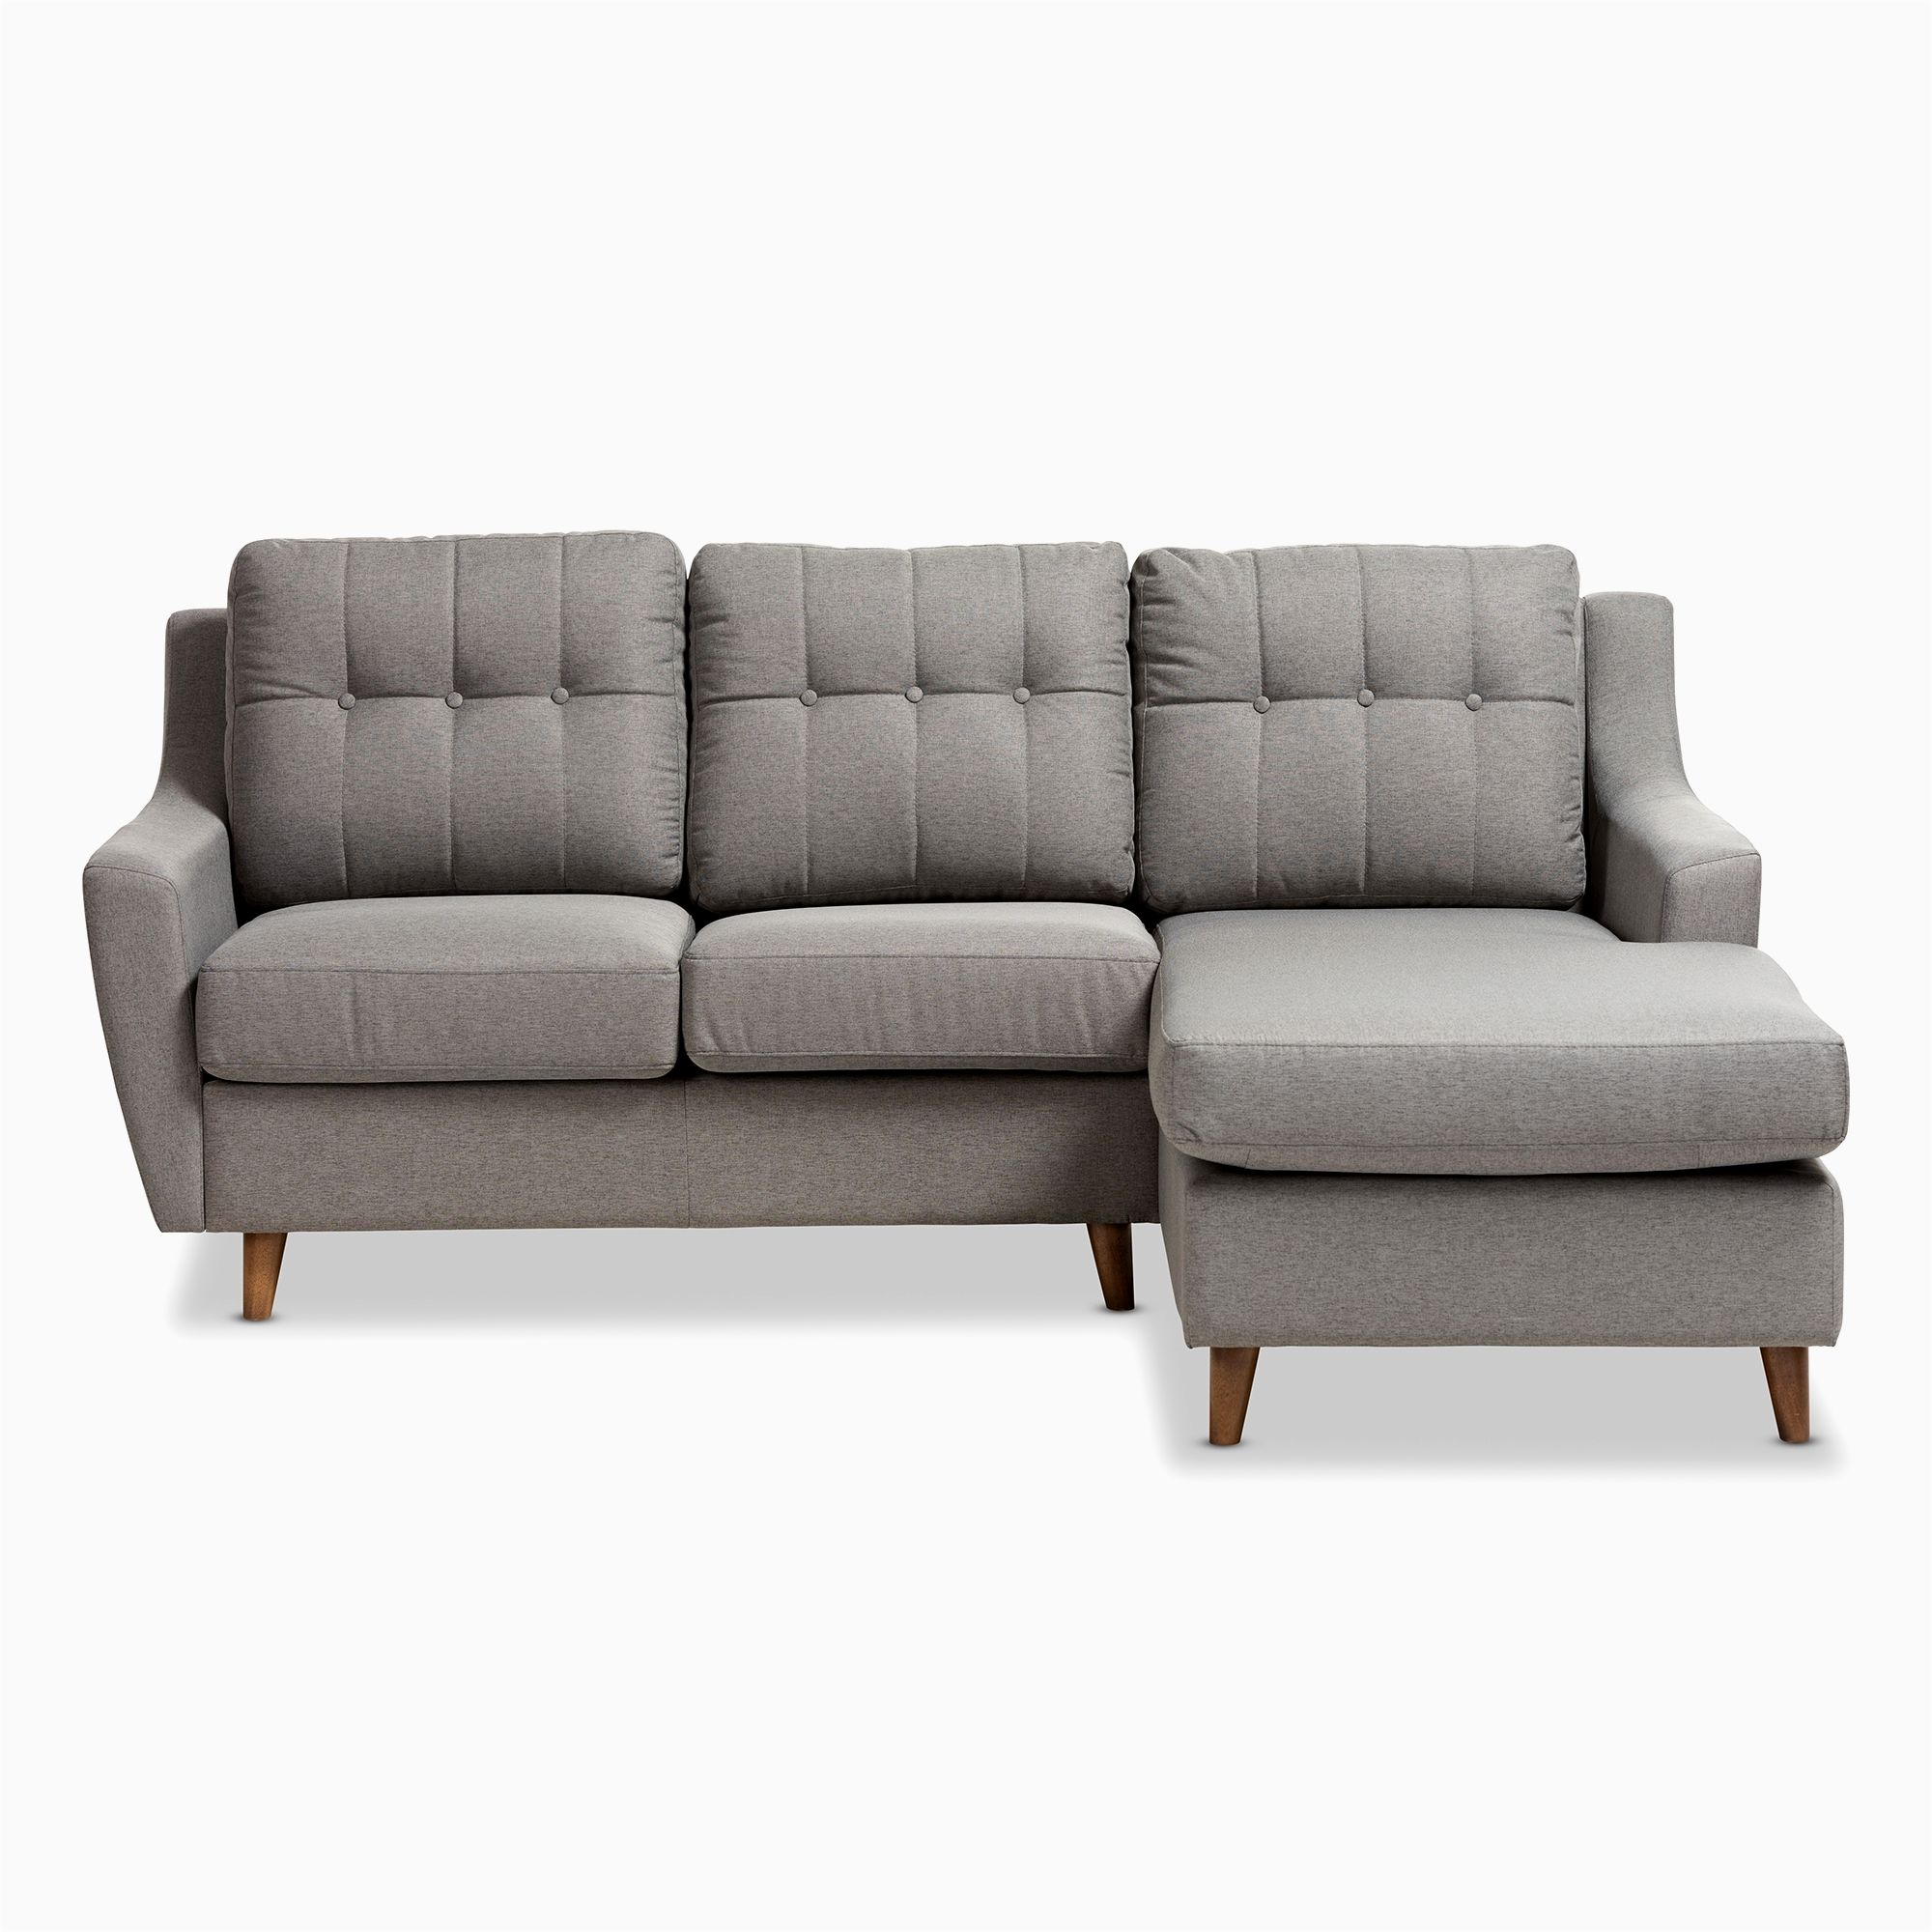 Cheap Sofas On Sale: Beautiful Sofas For Sale Cheap Pattern